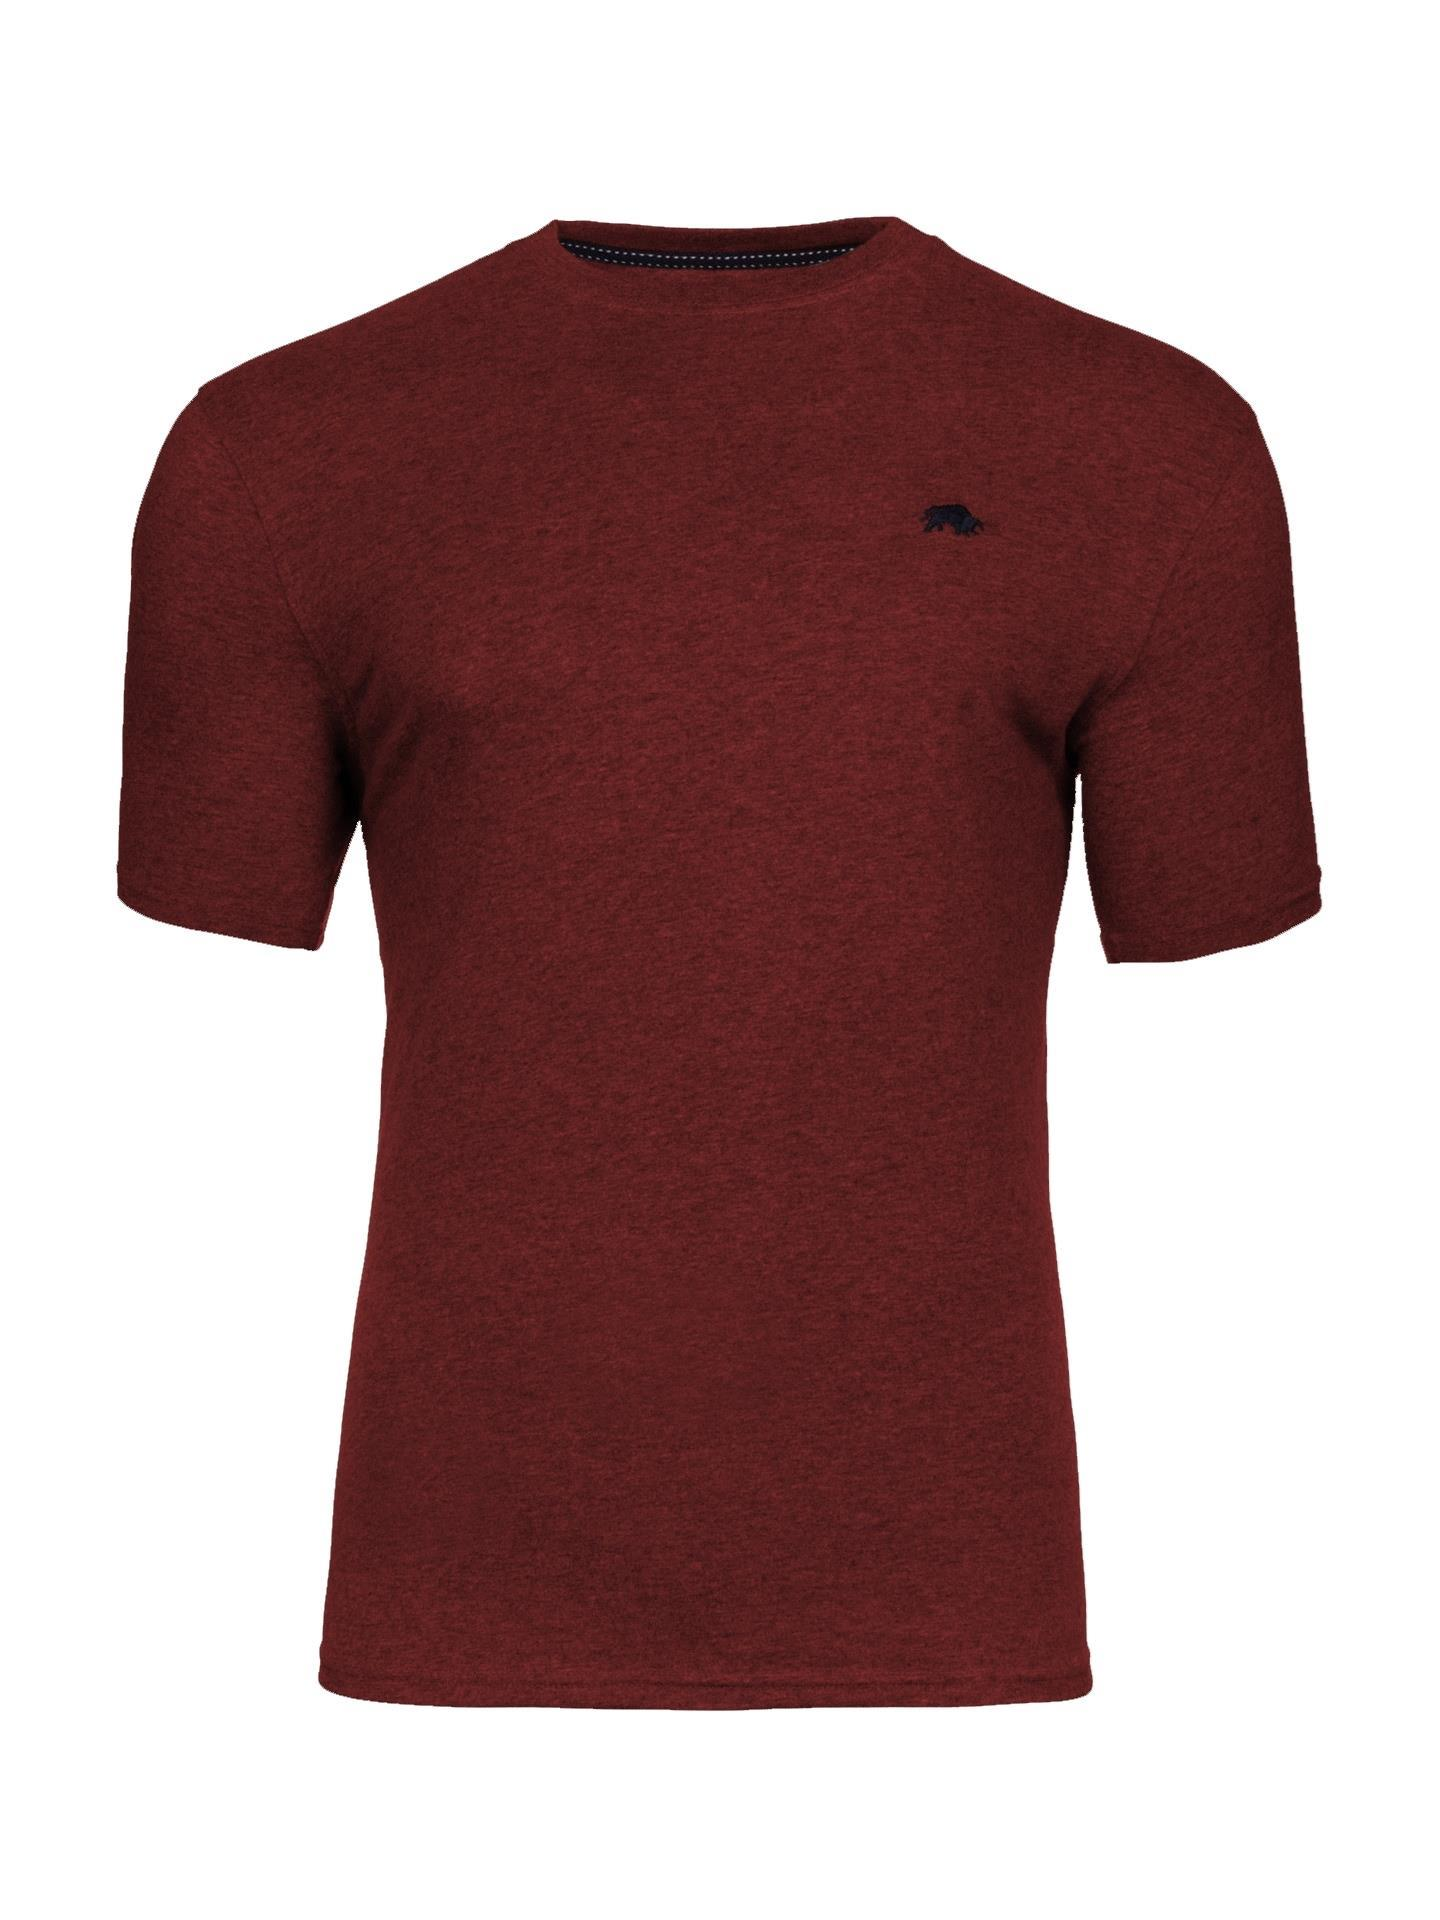 signature crew neck t-shirt (claret)